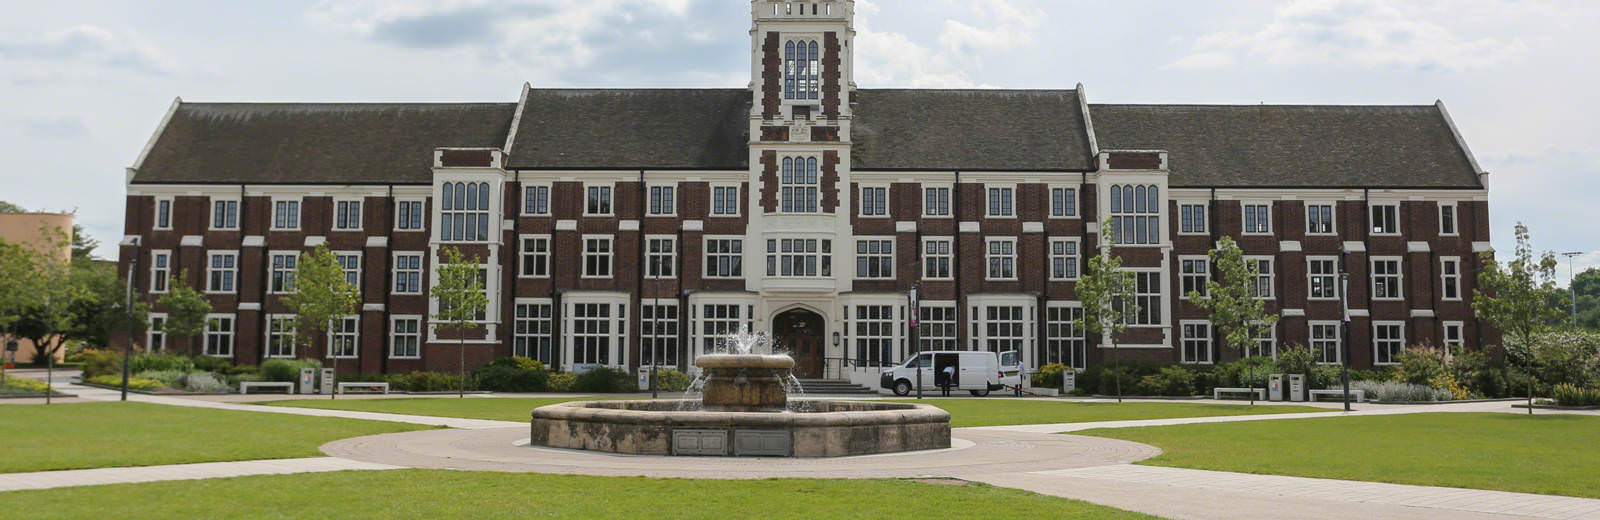 Risultati immagini per loughborough university